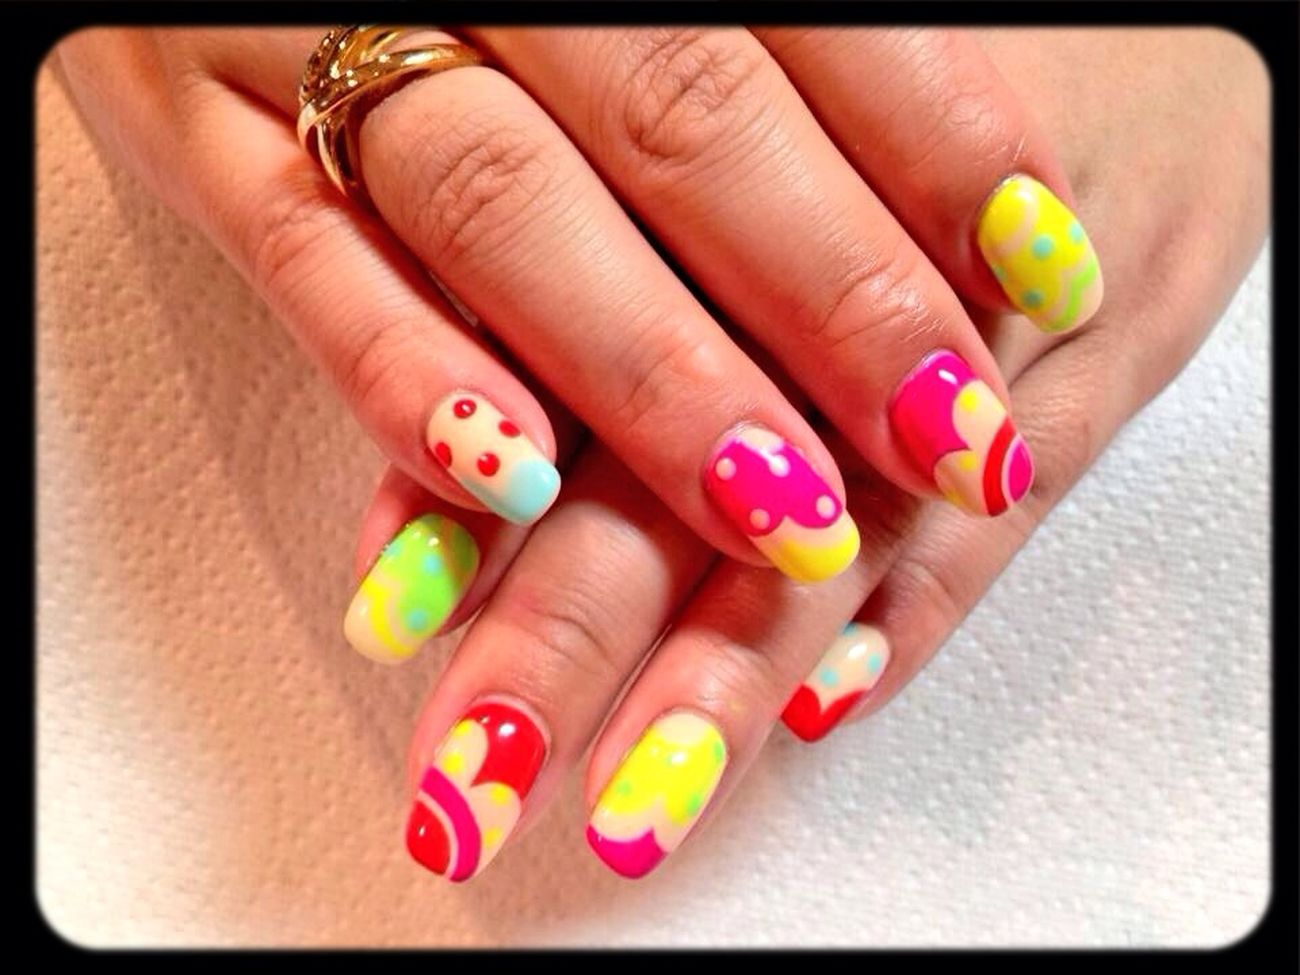 Enjoying Life Nail Art ♡